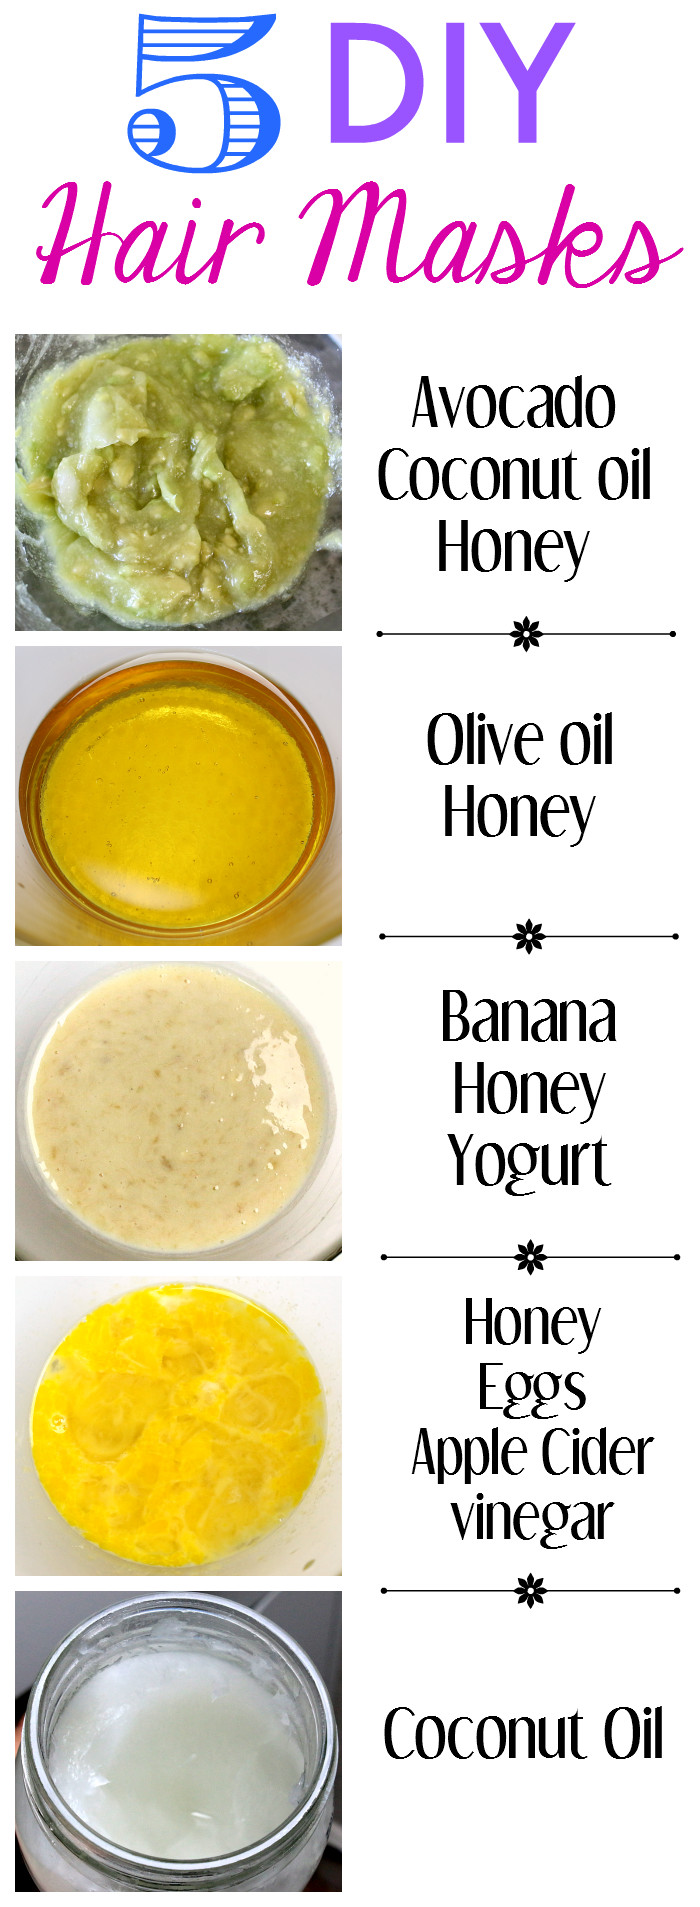 Best ideas about DIY Hair Mask For Dry Damaged Hair . Save or Pin 5 DIY Hair Masks You Can Make at Home Now.